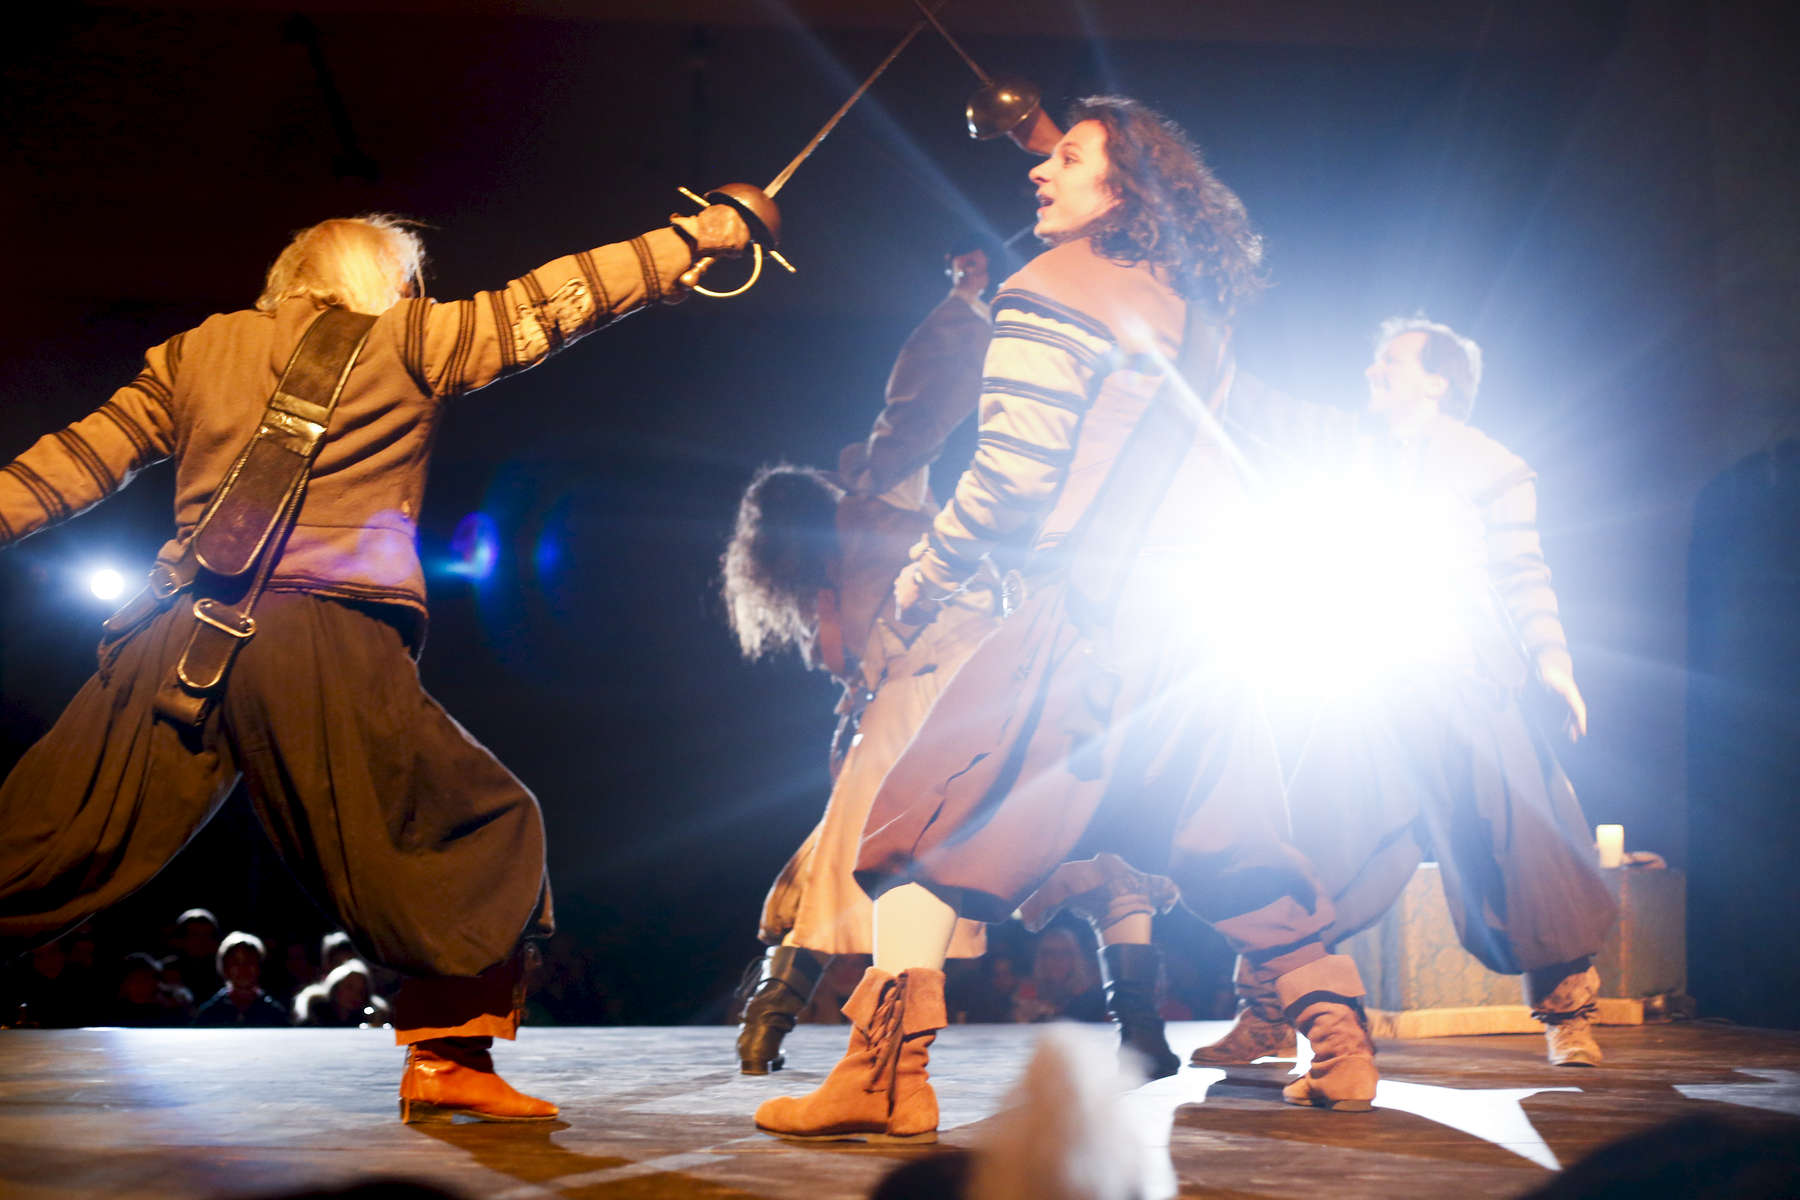 Didier Le Gal, Lorenzo Bello, Melodie Veillard and Thierry Peteau fight on stage.